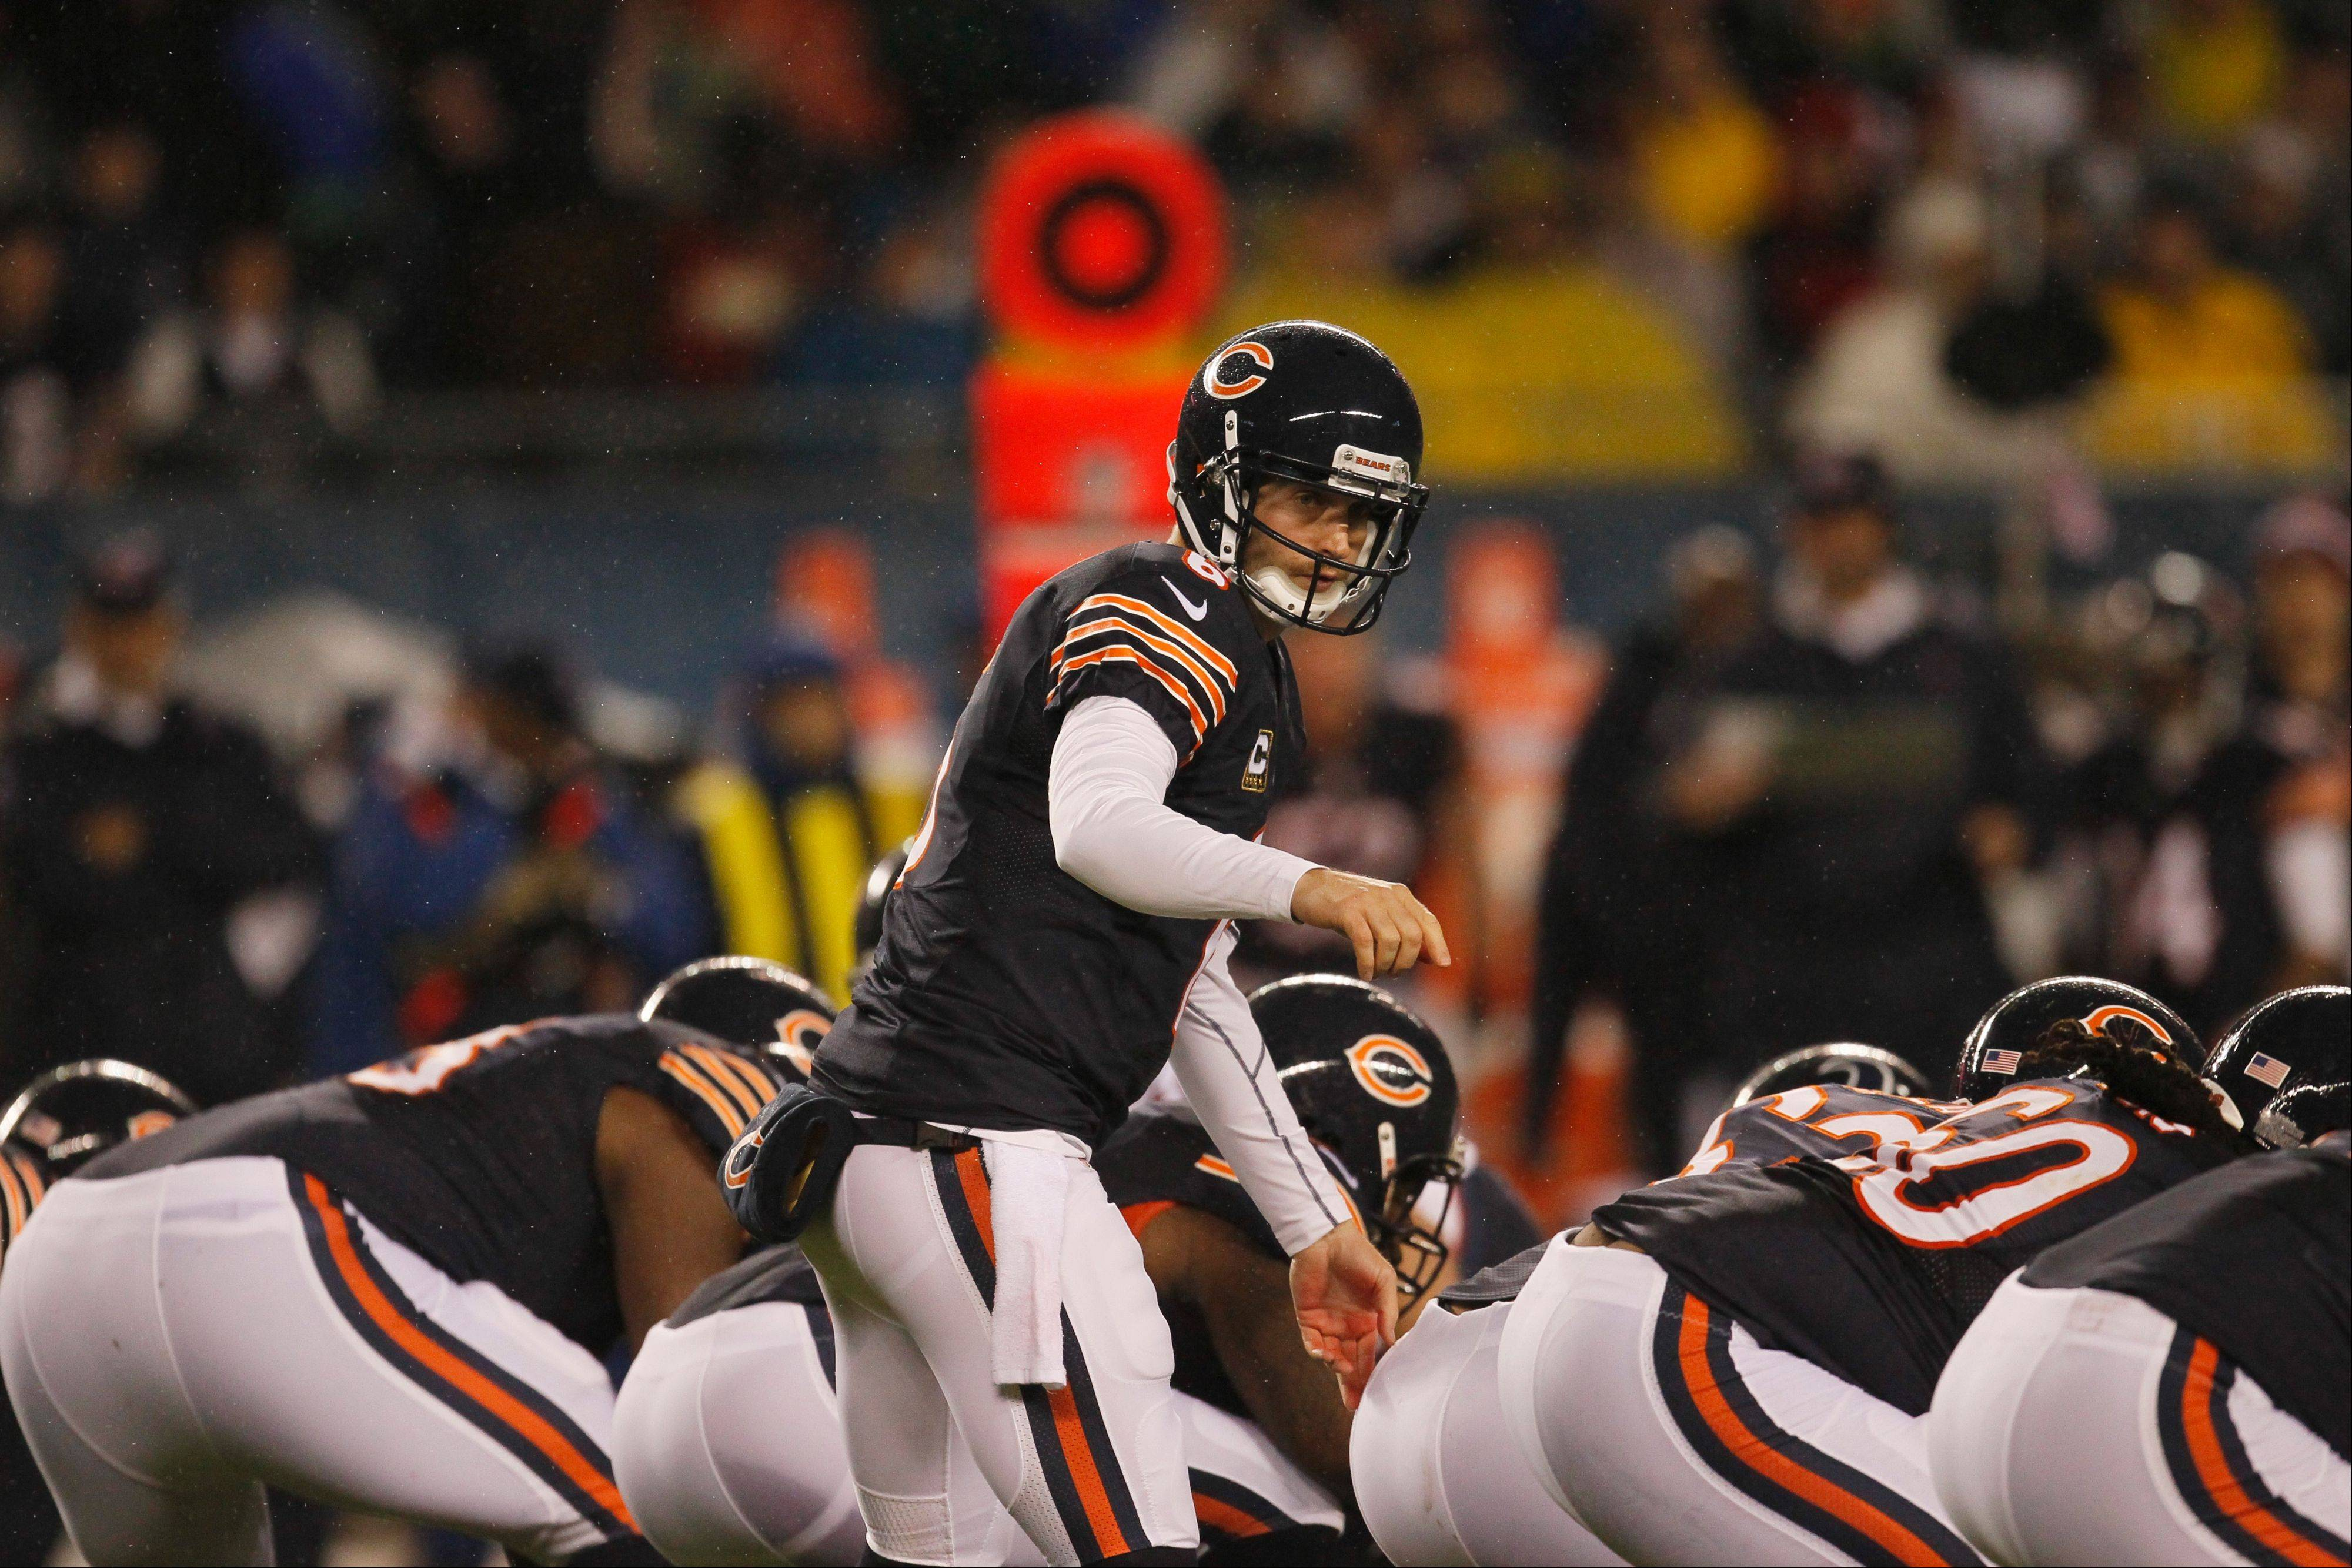 Bears' Tice looking at options with line's poor play